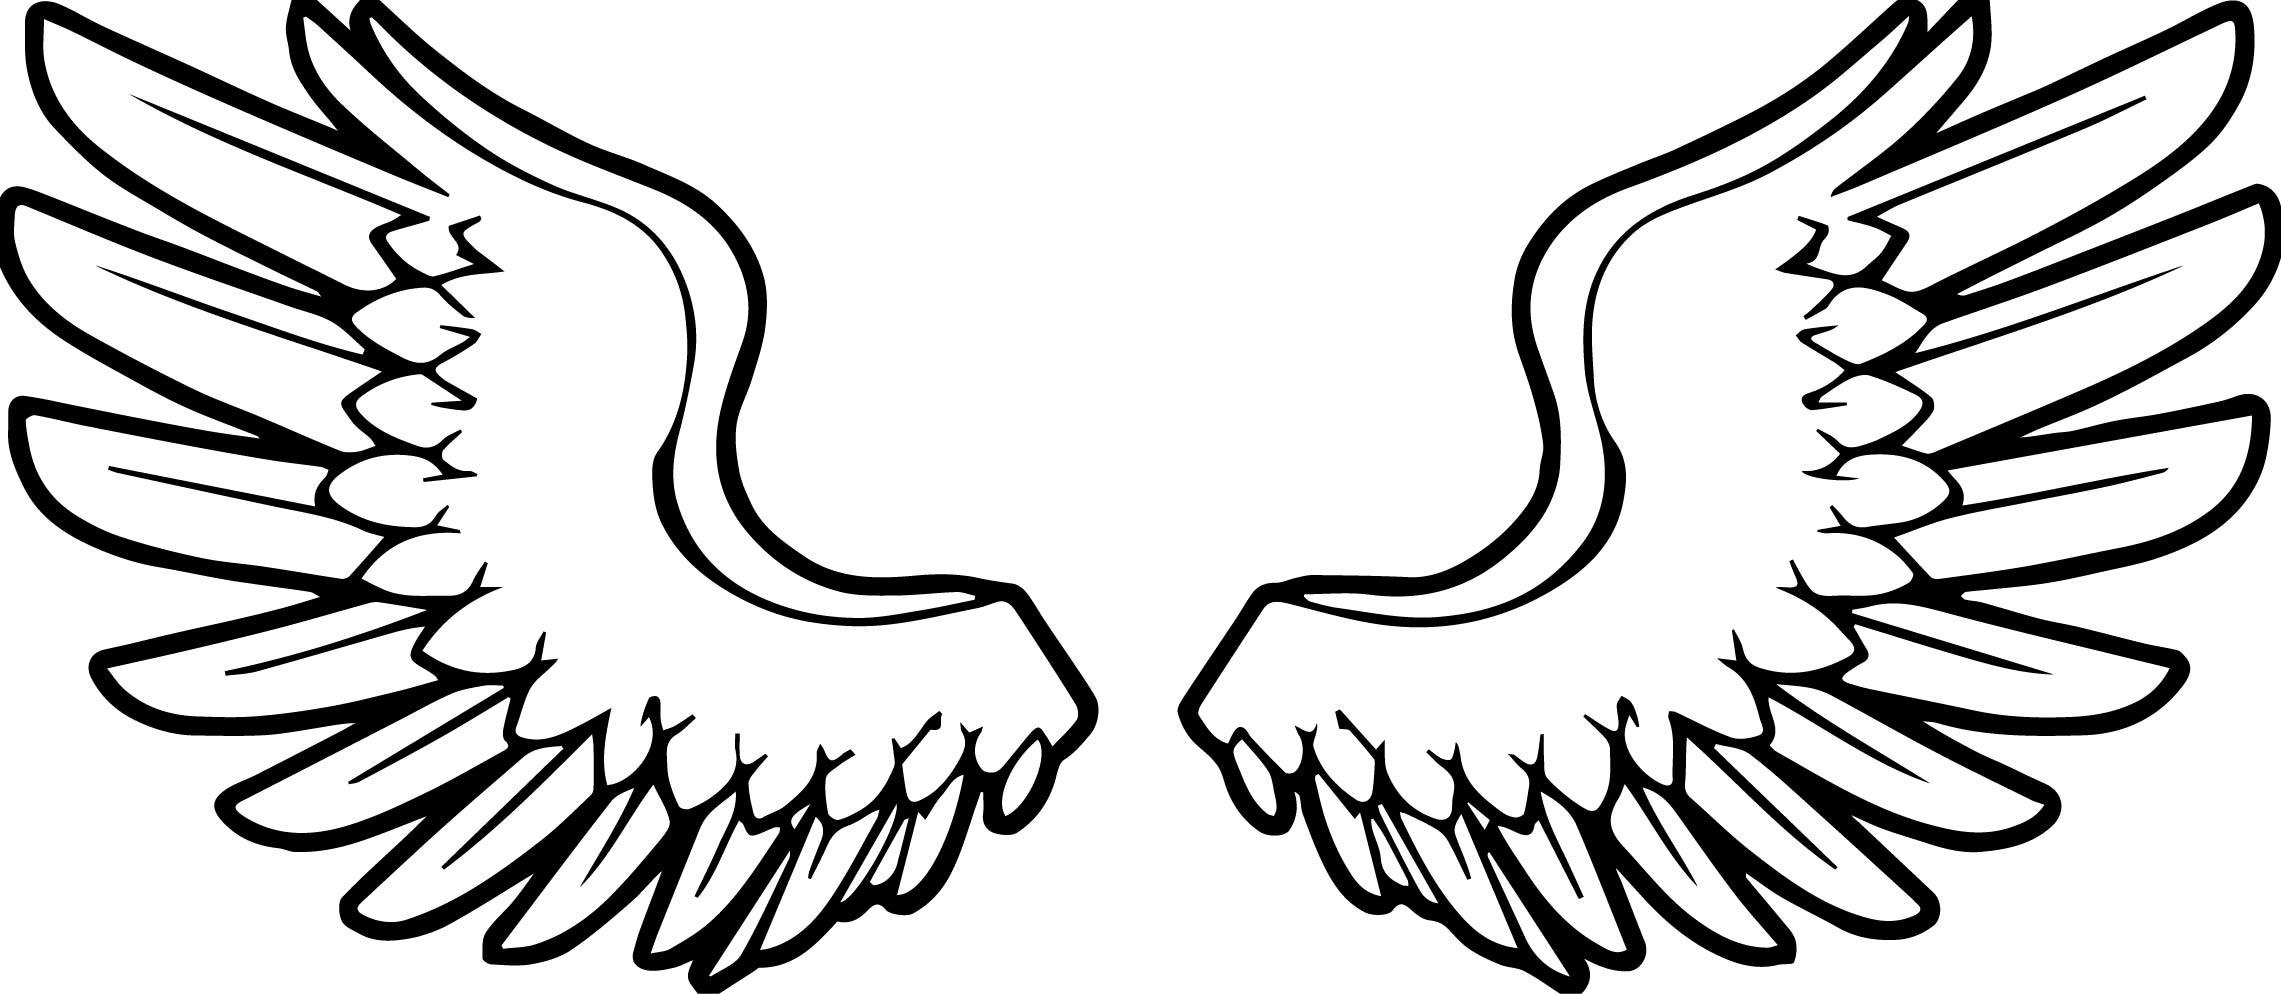 2281x994 Angel Wings Coloring Pages Download For Kids Brilliant Acpra